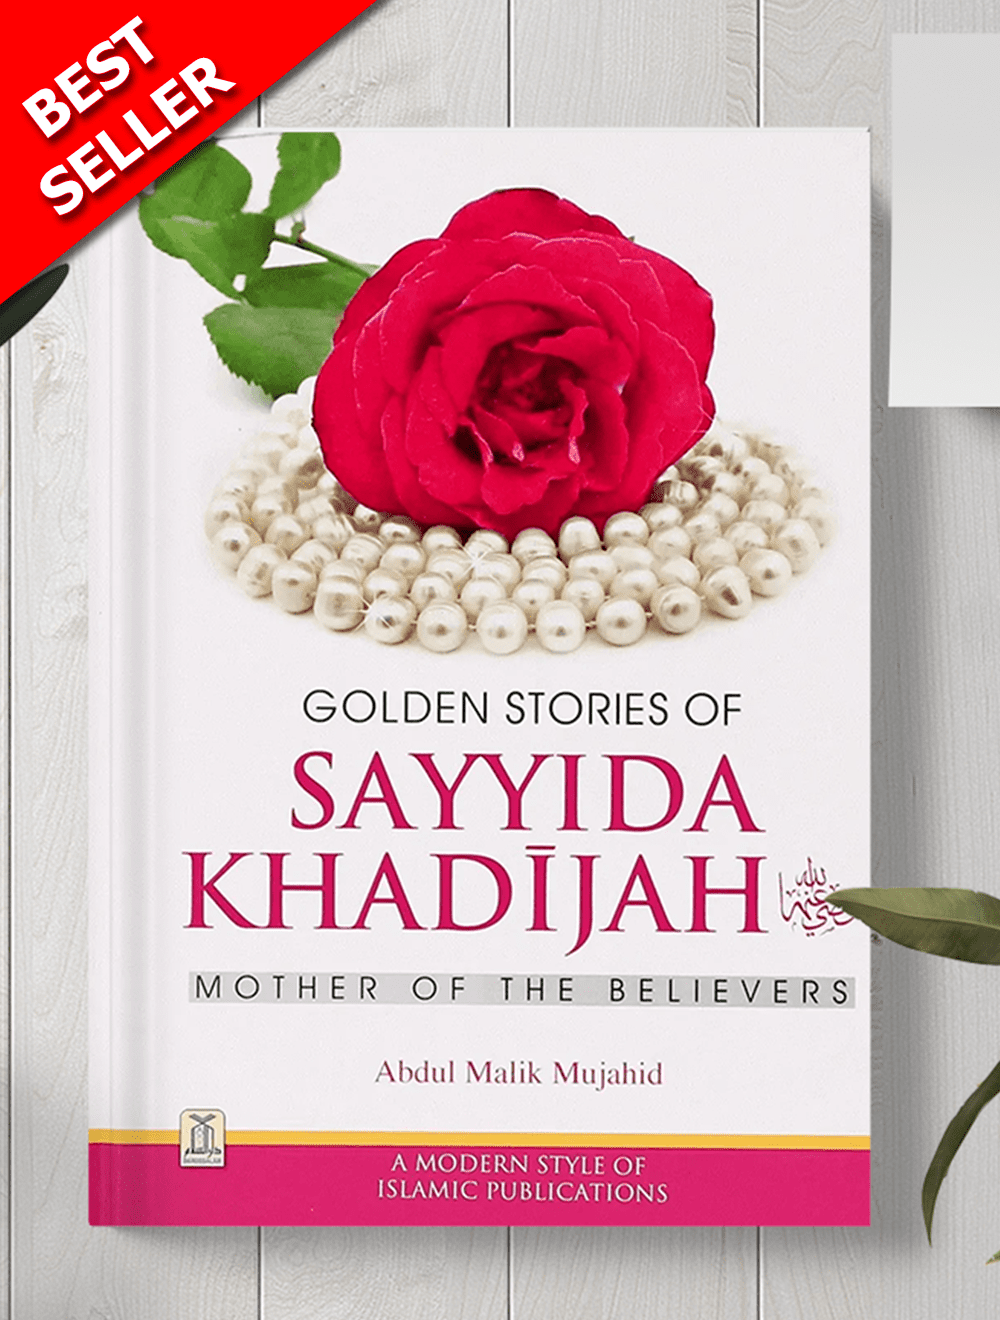 Golden Stories of Sayyidah Khadijah (RA)-A bestselling biography on the mother of the believers